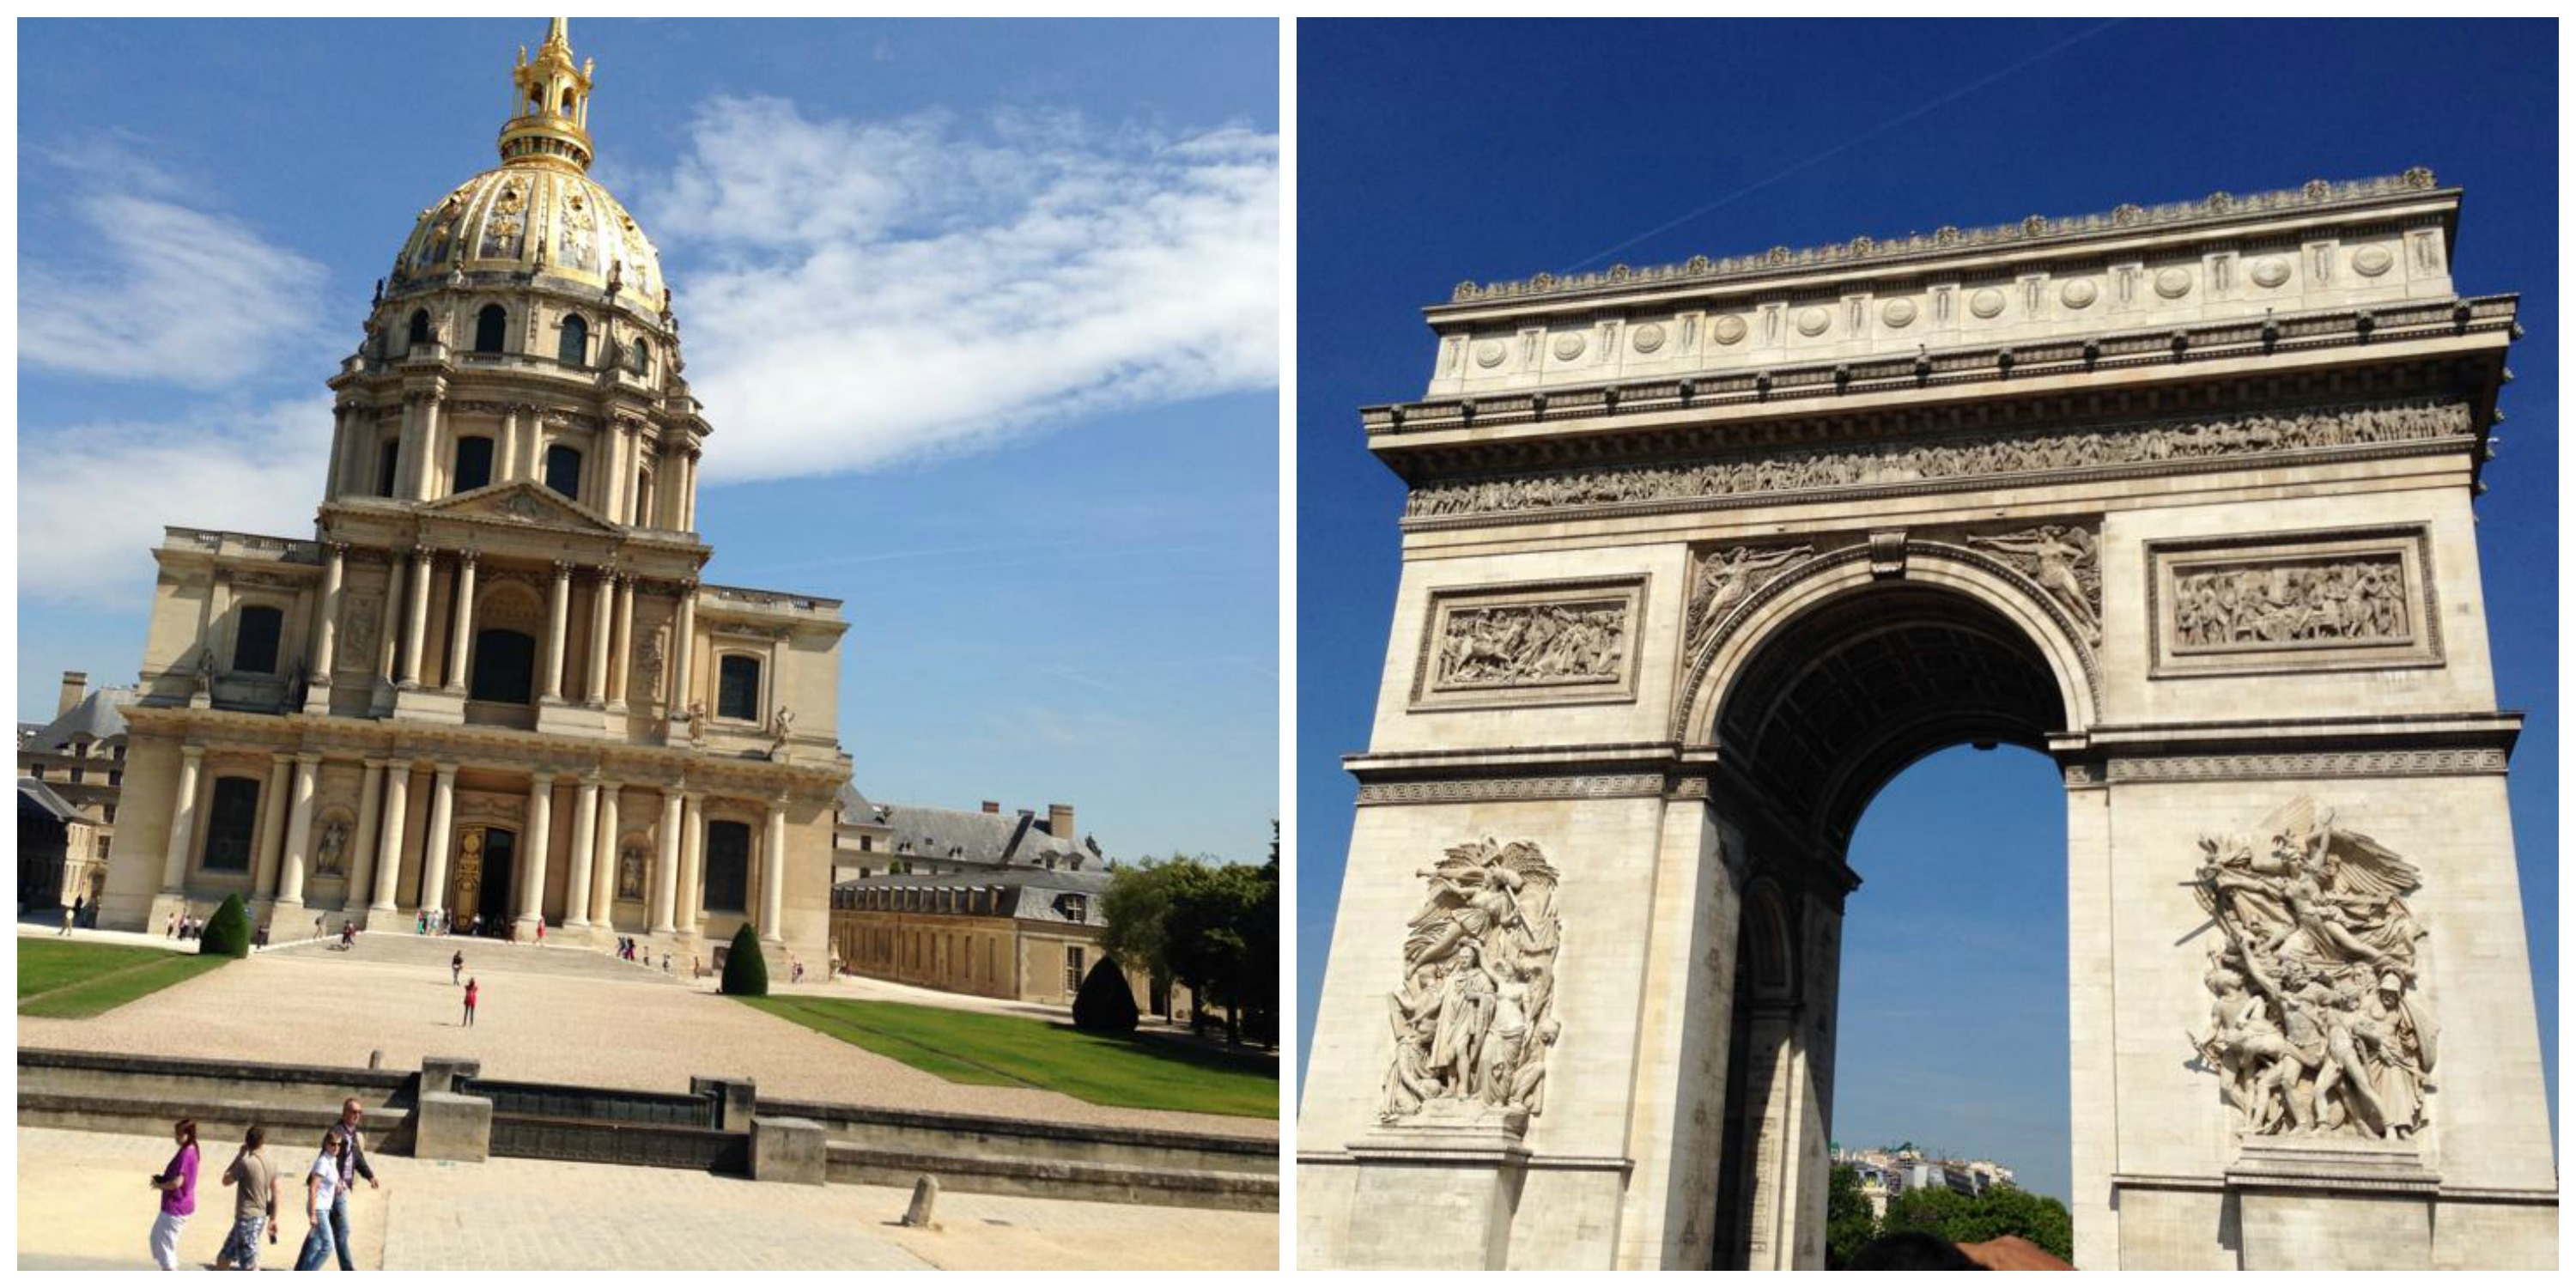 Hotel des Invalides and Arc de Triomphe